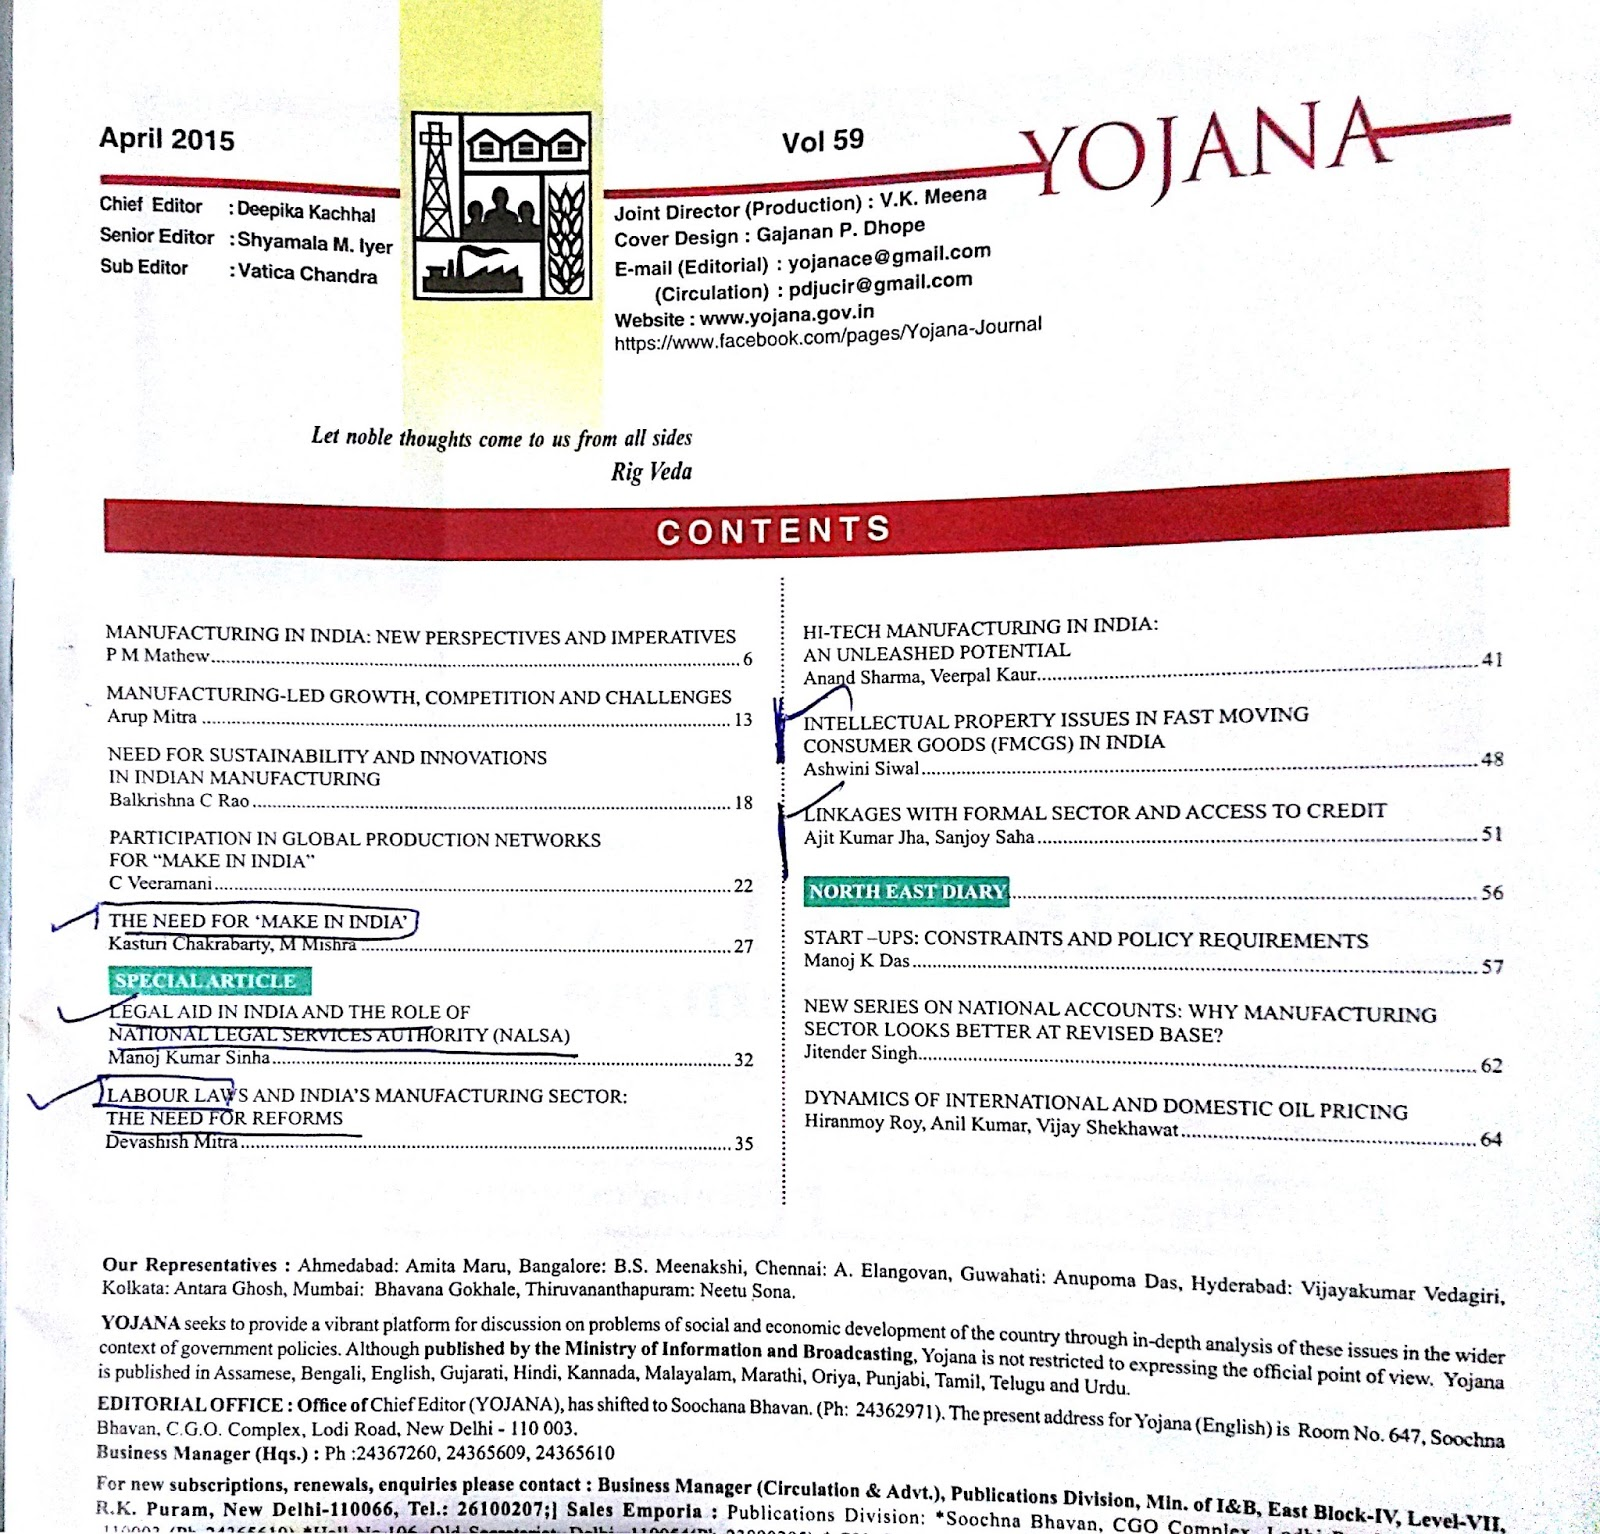 IAS Preparation- simplified like never before!: How to read the Yojana ...